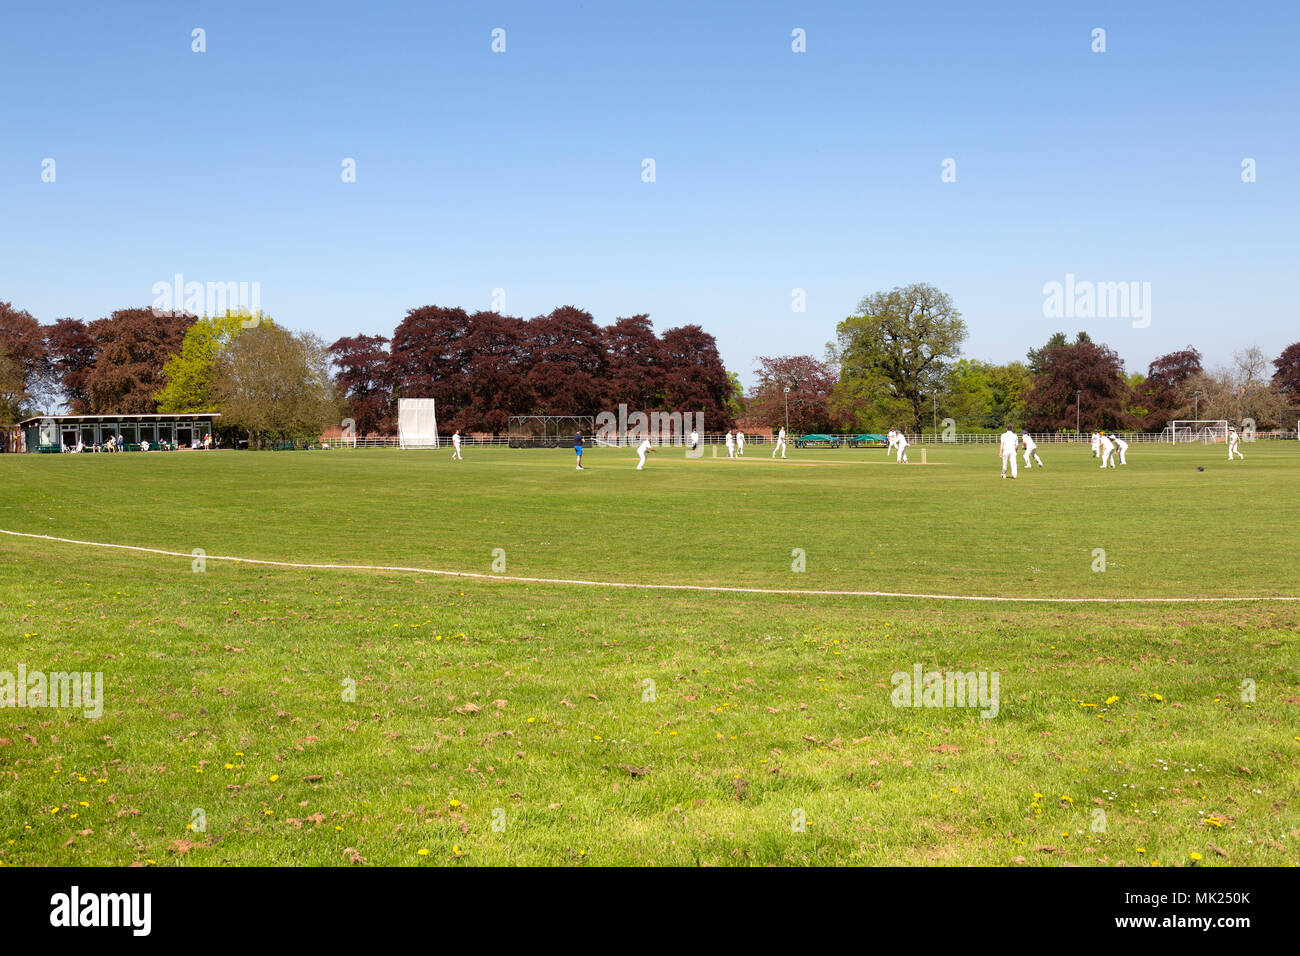 A cricket match on an English cricket field in Enville, Staffordshire, in the summer, showing cricket pavilion on the left. - Stock Image